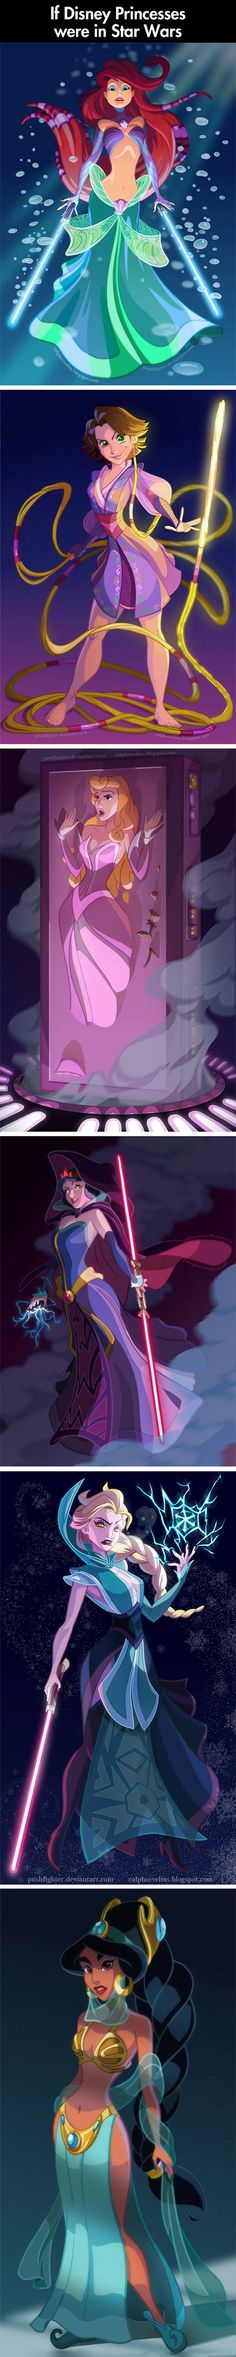 What 6 famous Disney princesses would look like in the Star Wars universe.